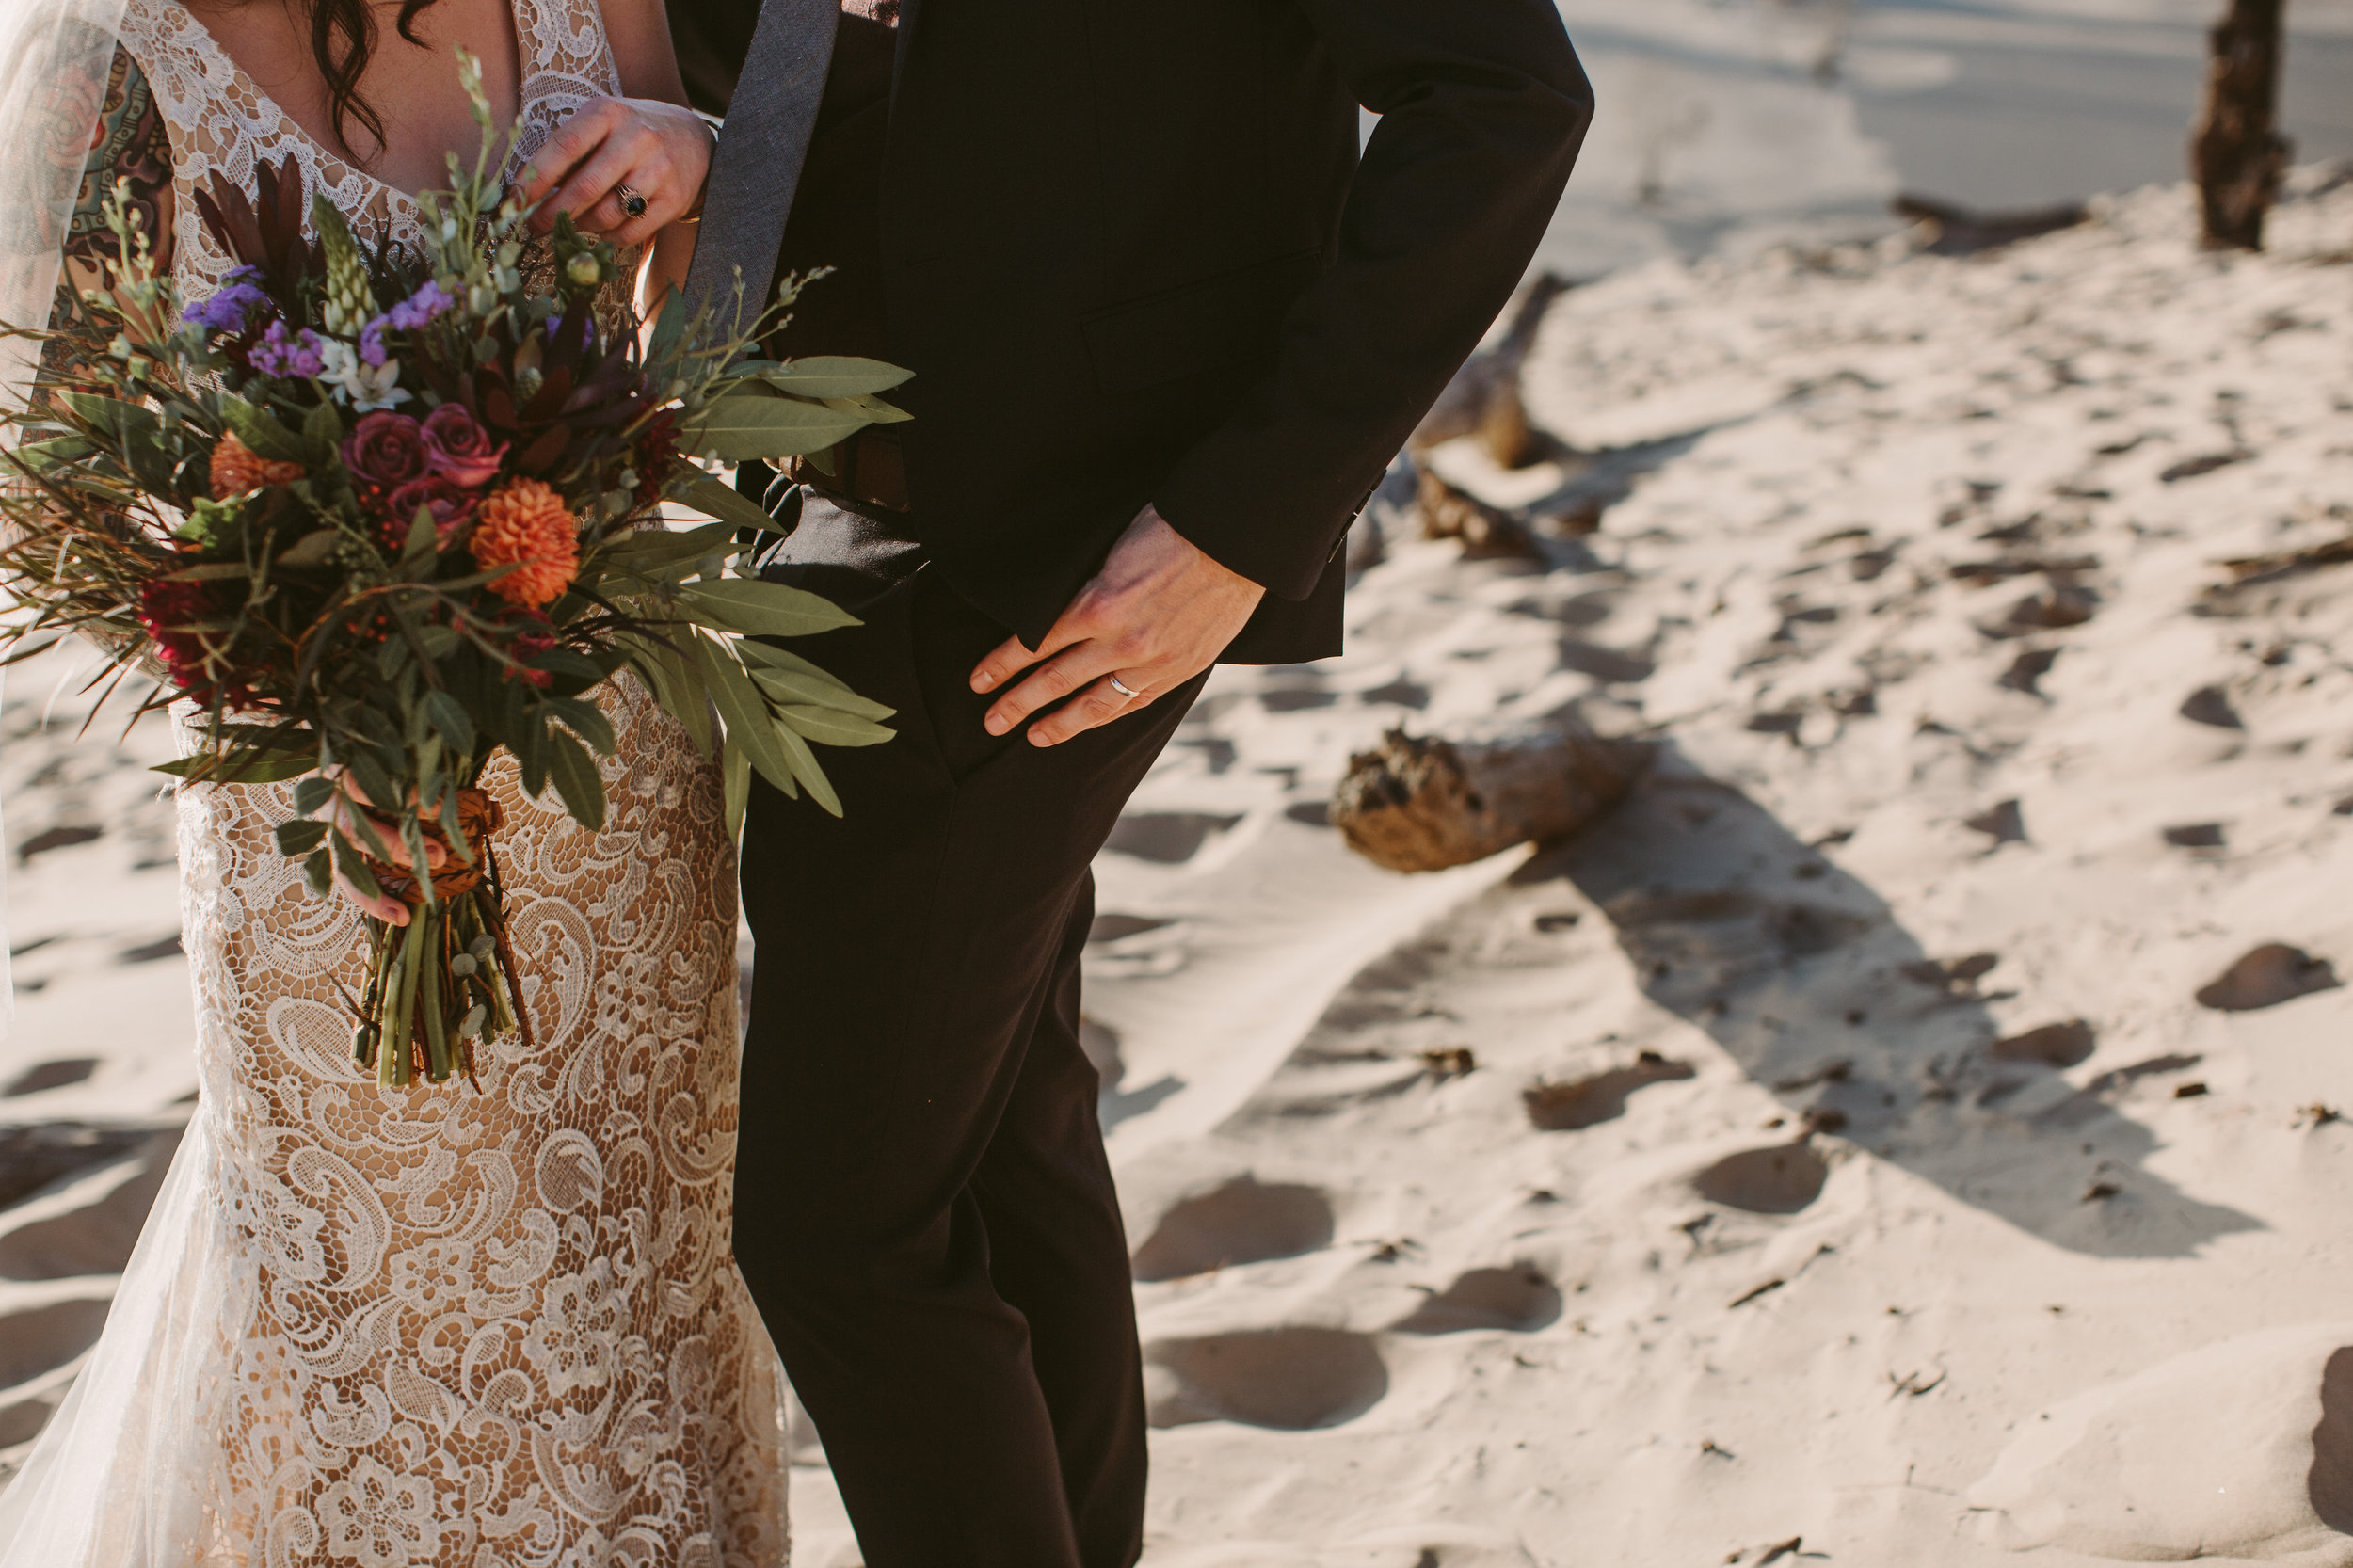 Michigan-Wedding-Photography-at-Warren-Dunes-State-Park-by-Megan-Saul-Photography(97of409).jpg